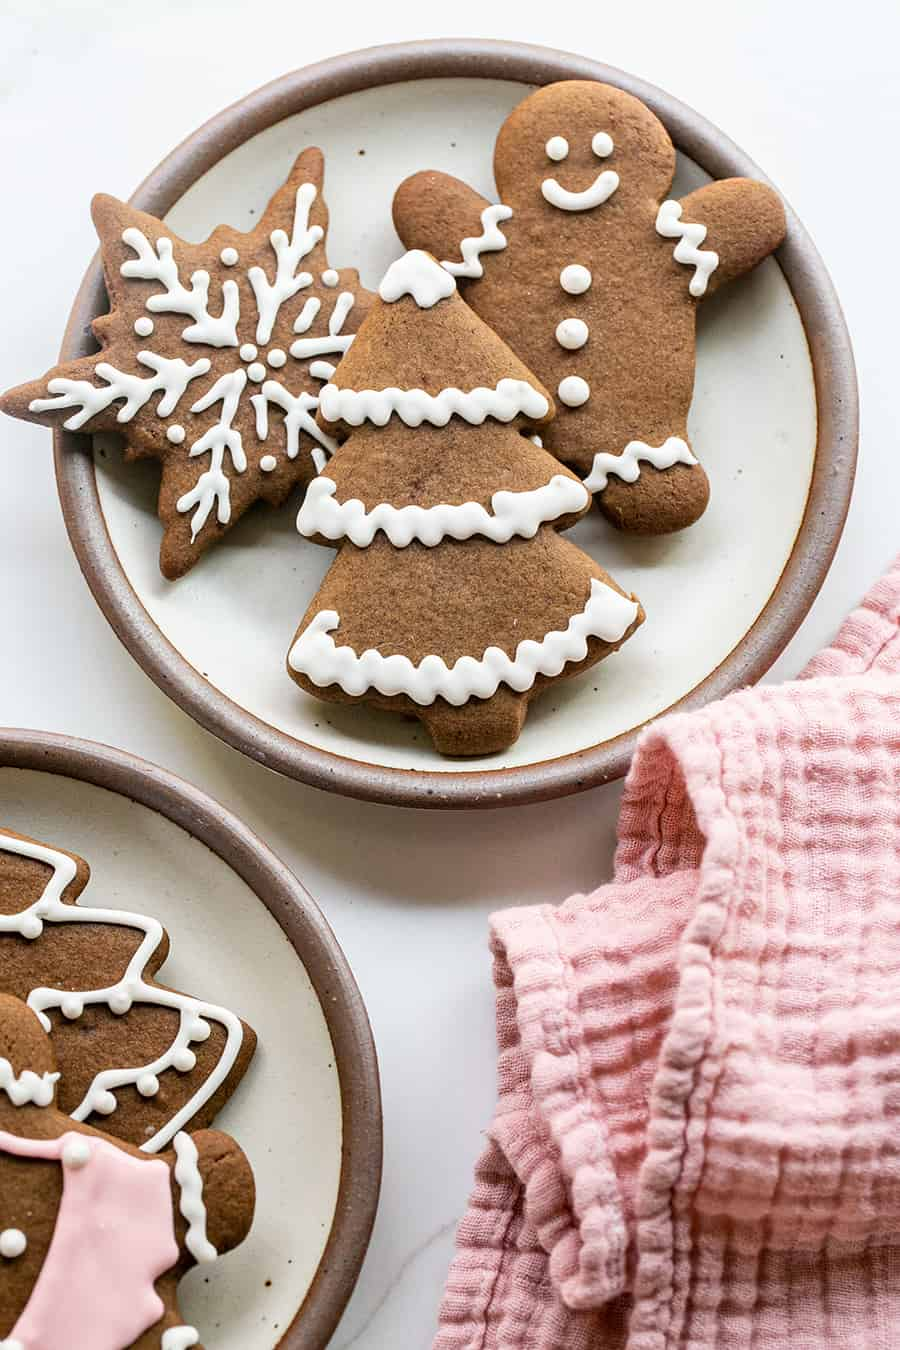 Gingerbread cookies on a plate